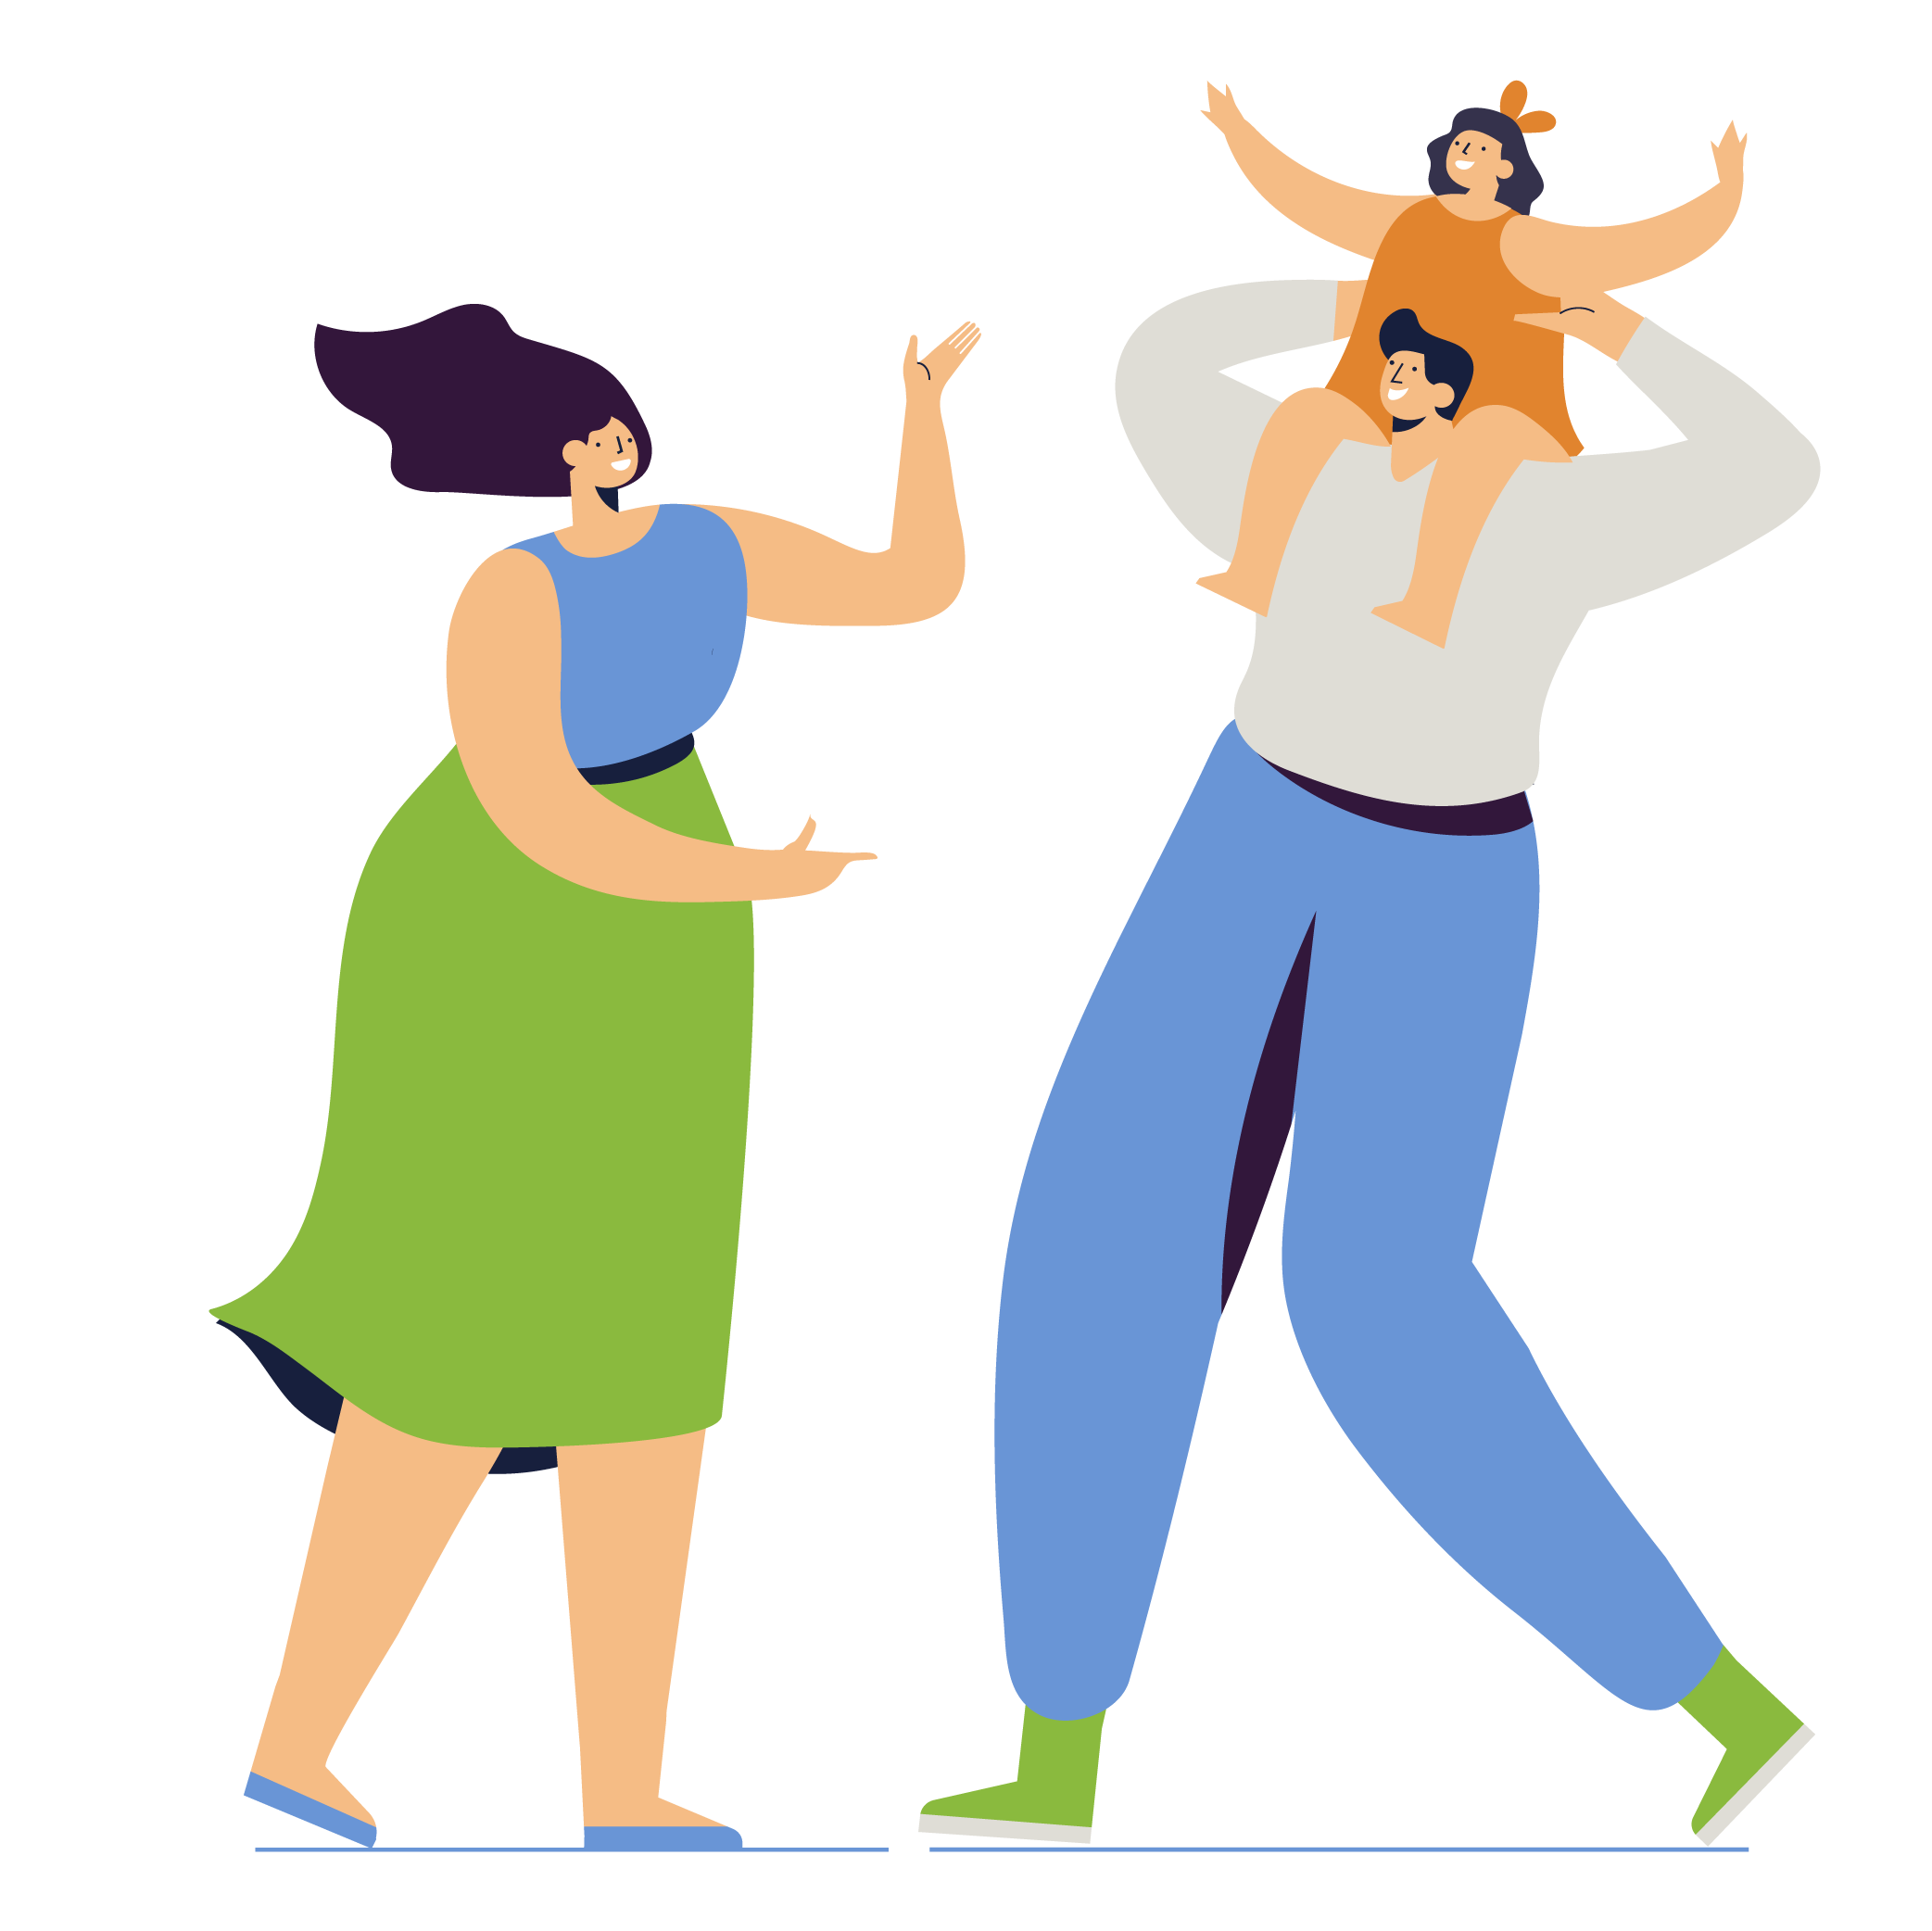 Illustration woman with hands gesturing, man with girl on shoulders